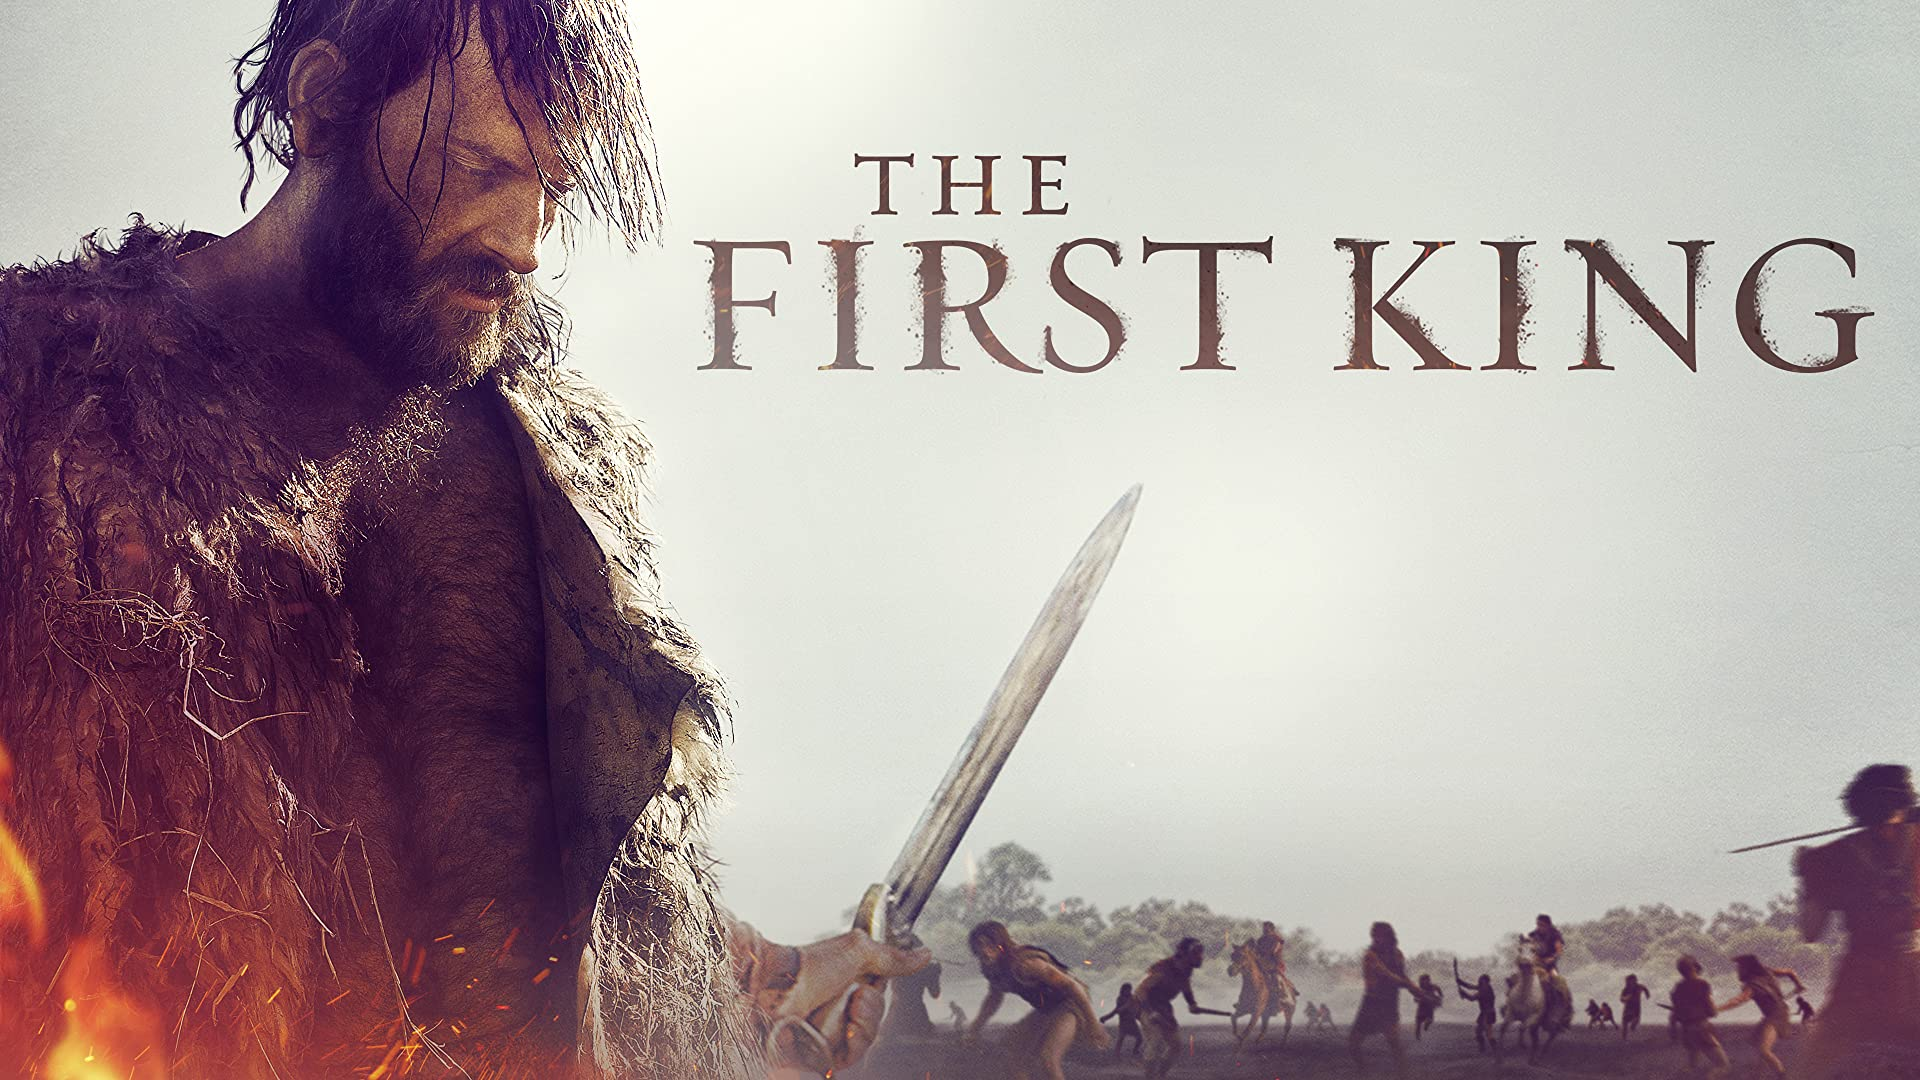 The First King